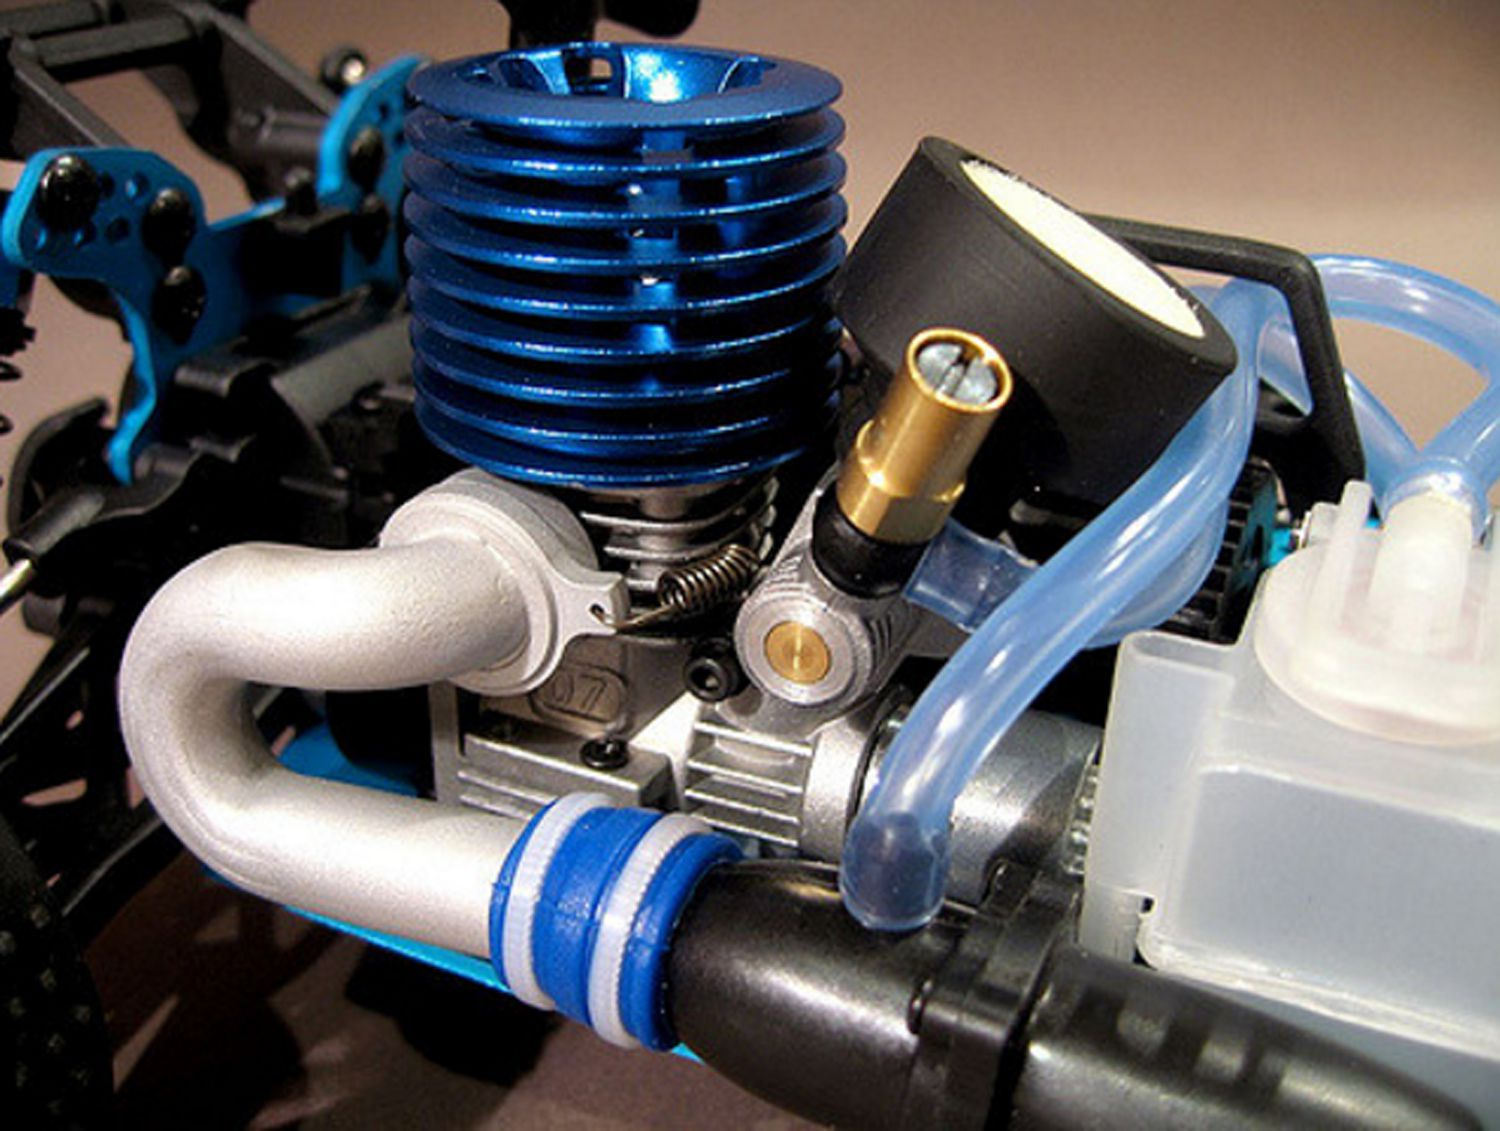 6 9 glow plug wiring diagram ge front load washer what are the different ways to start an rc nitro engine?